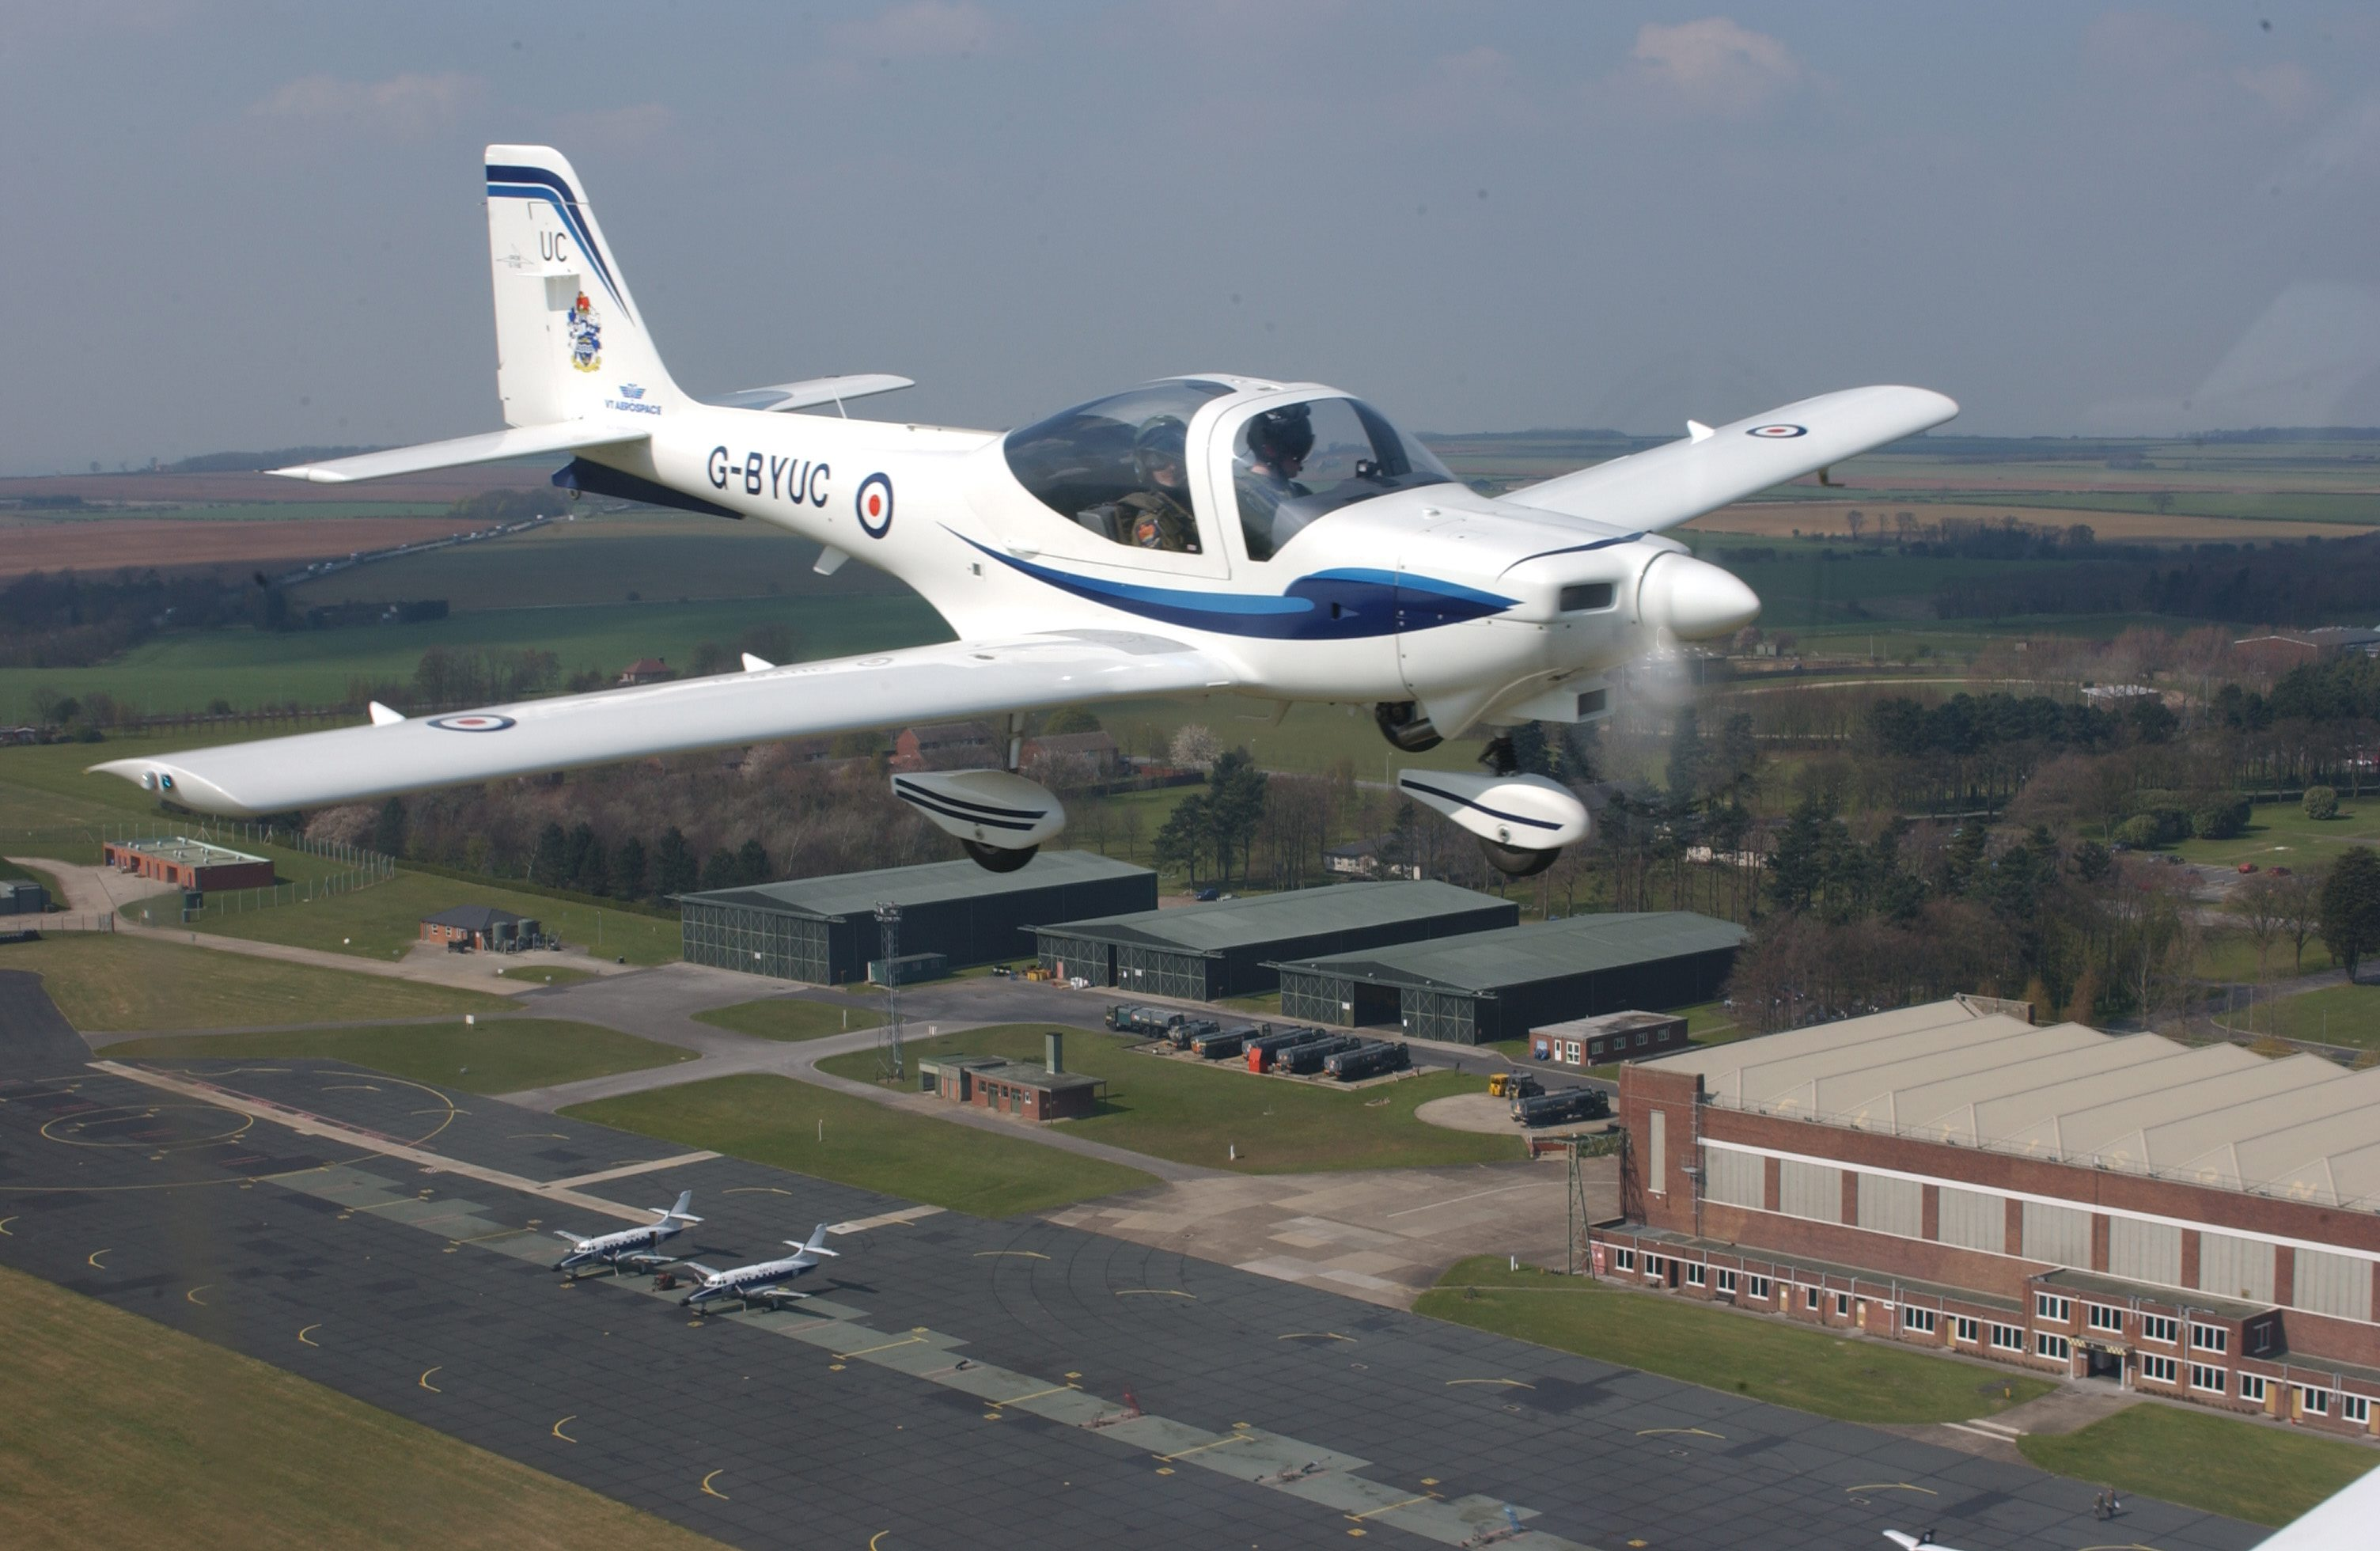 A Royal Air Force Grob Tutor photographed over Lincolnshire.